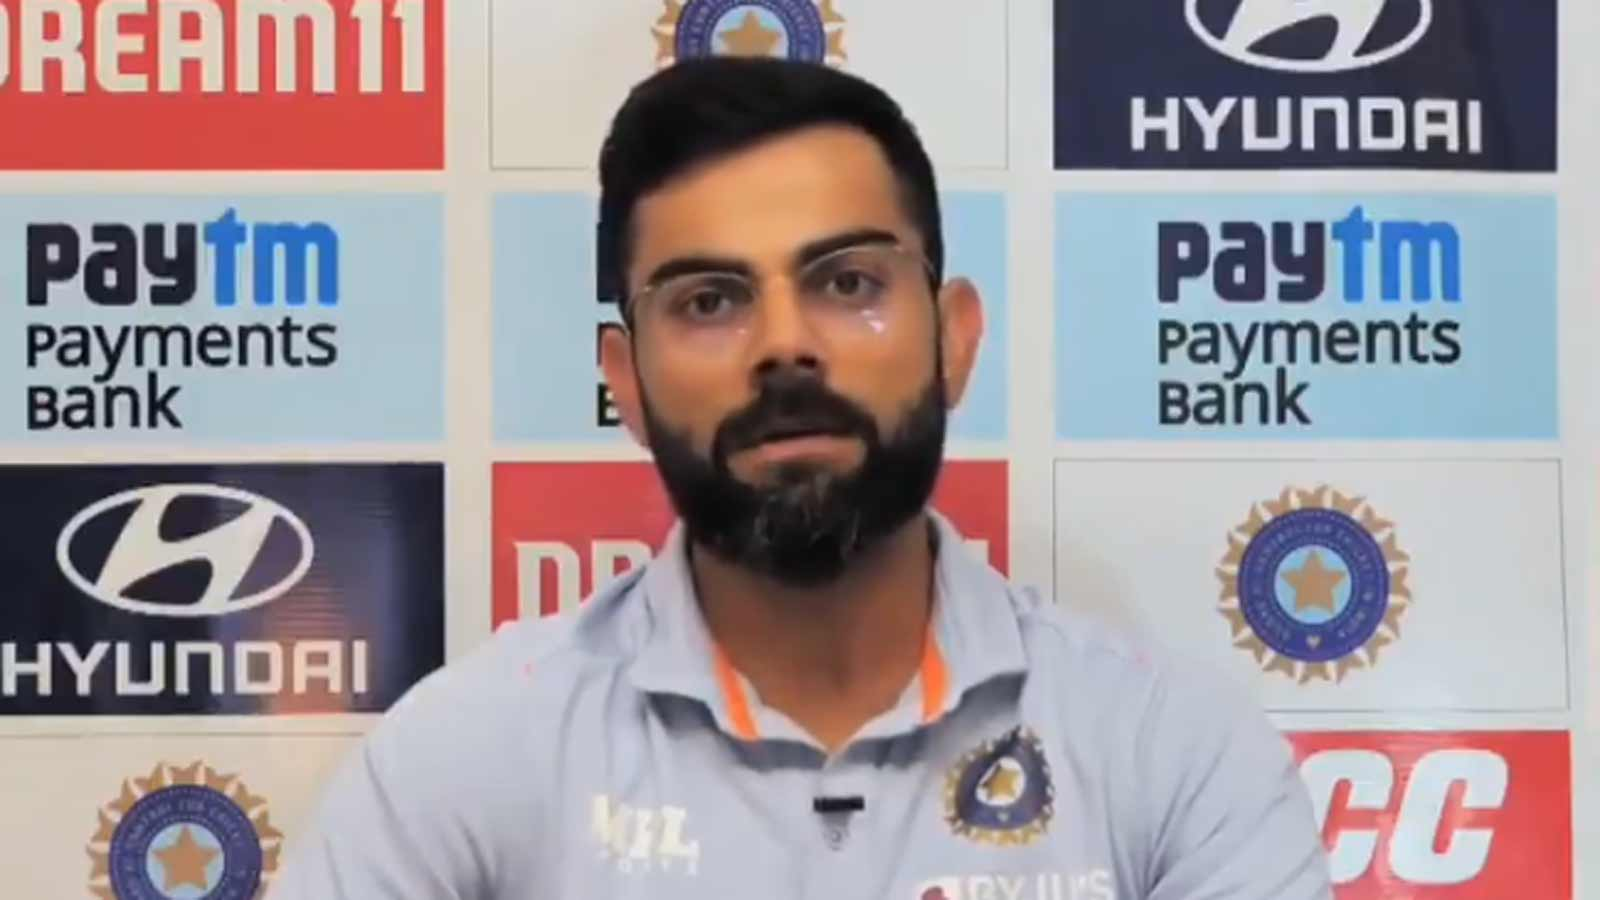 unfortunate-that-theres-too-much-noise-about-spinning-tracks-virat-kohli